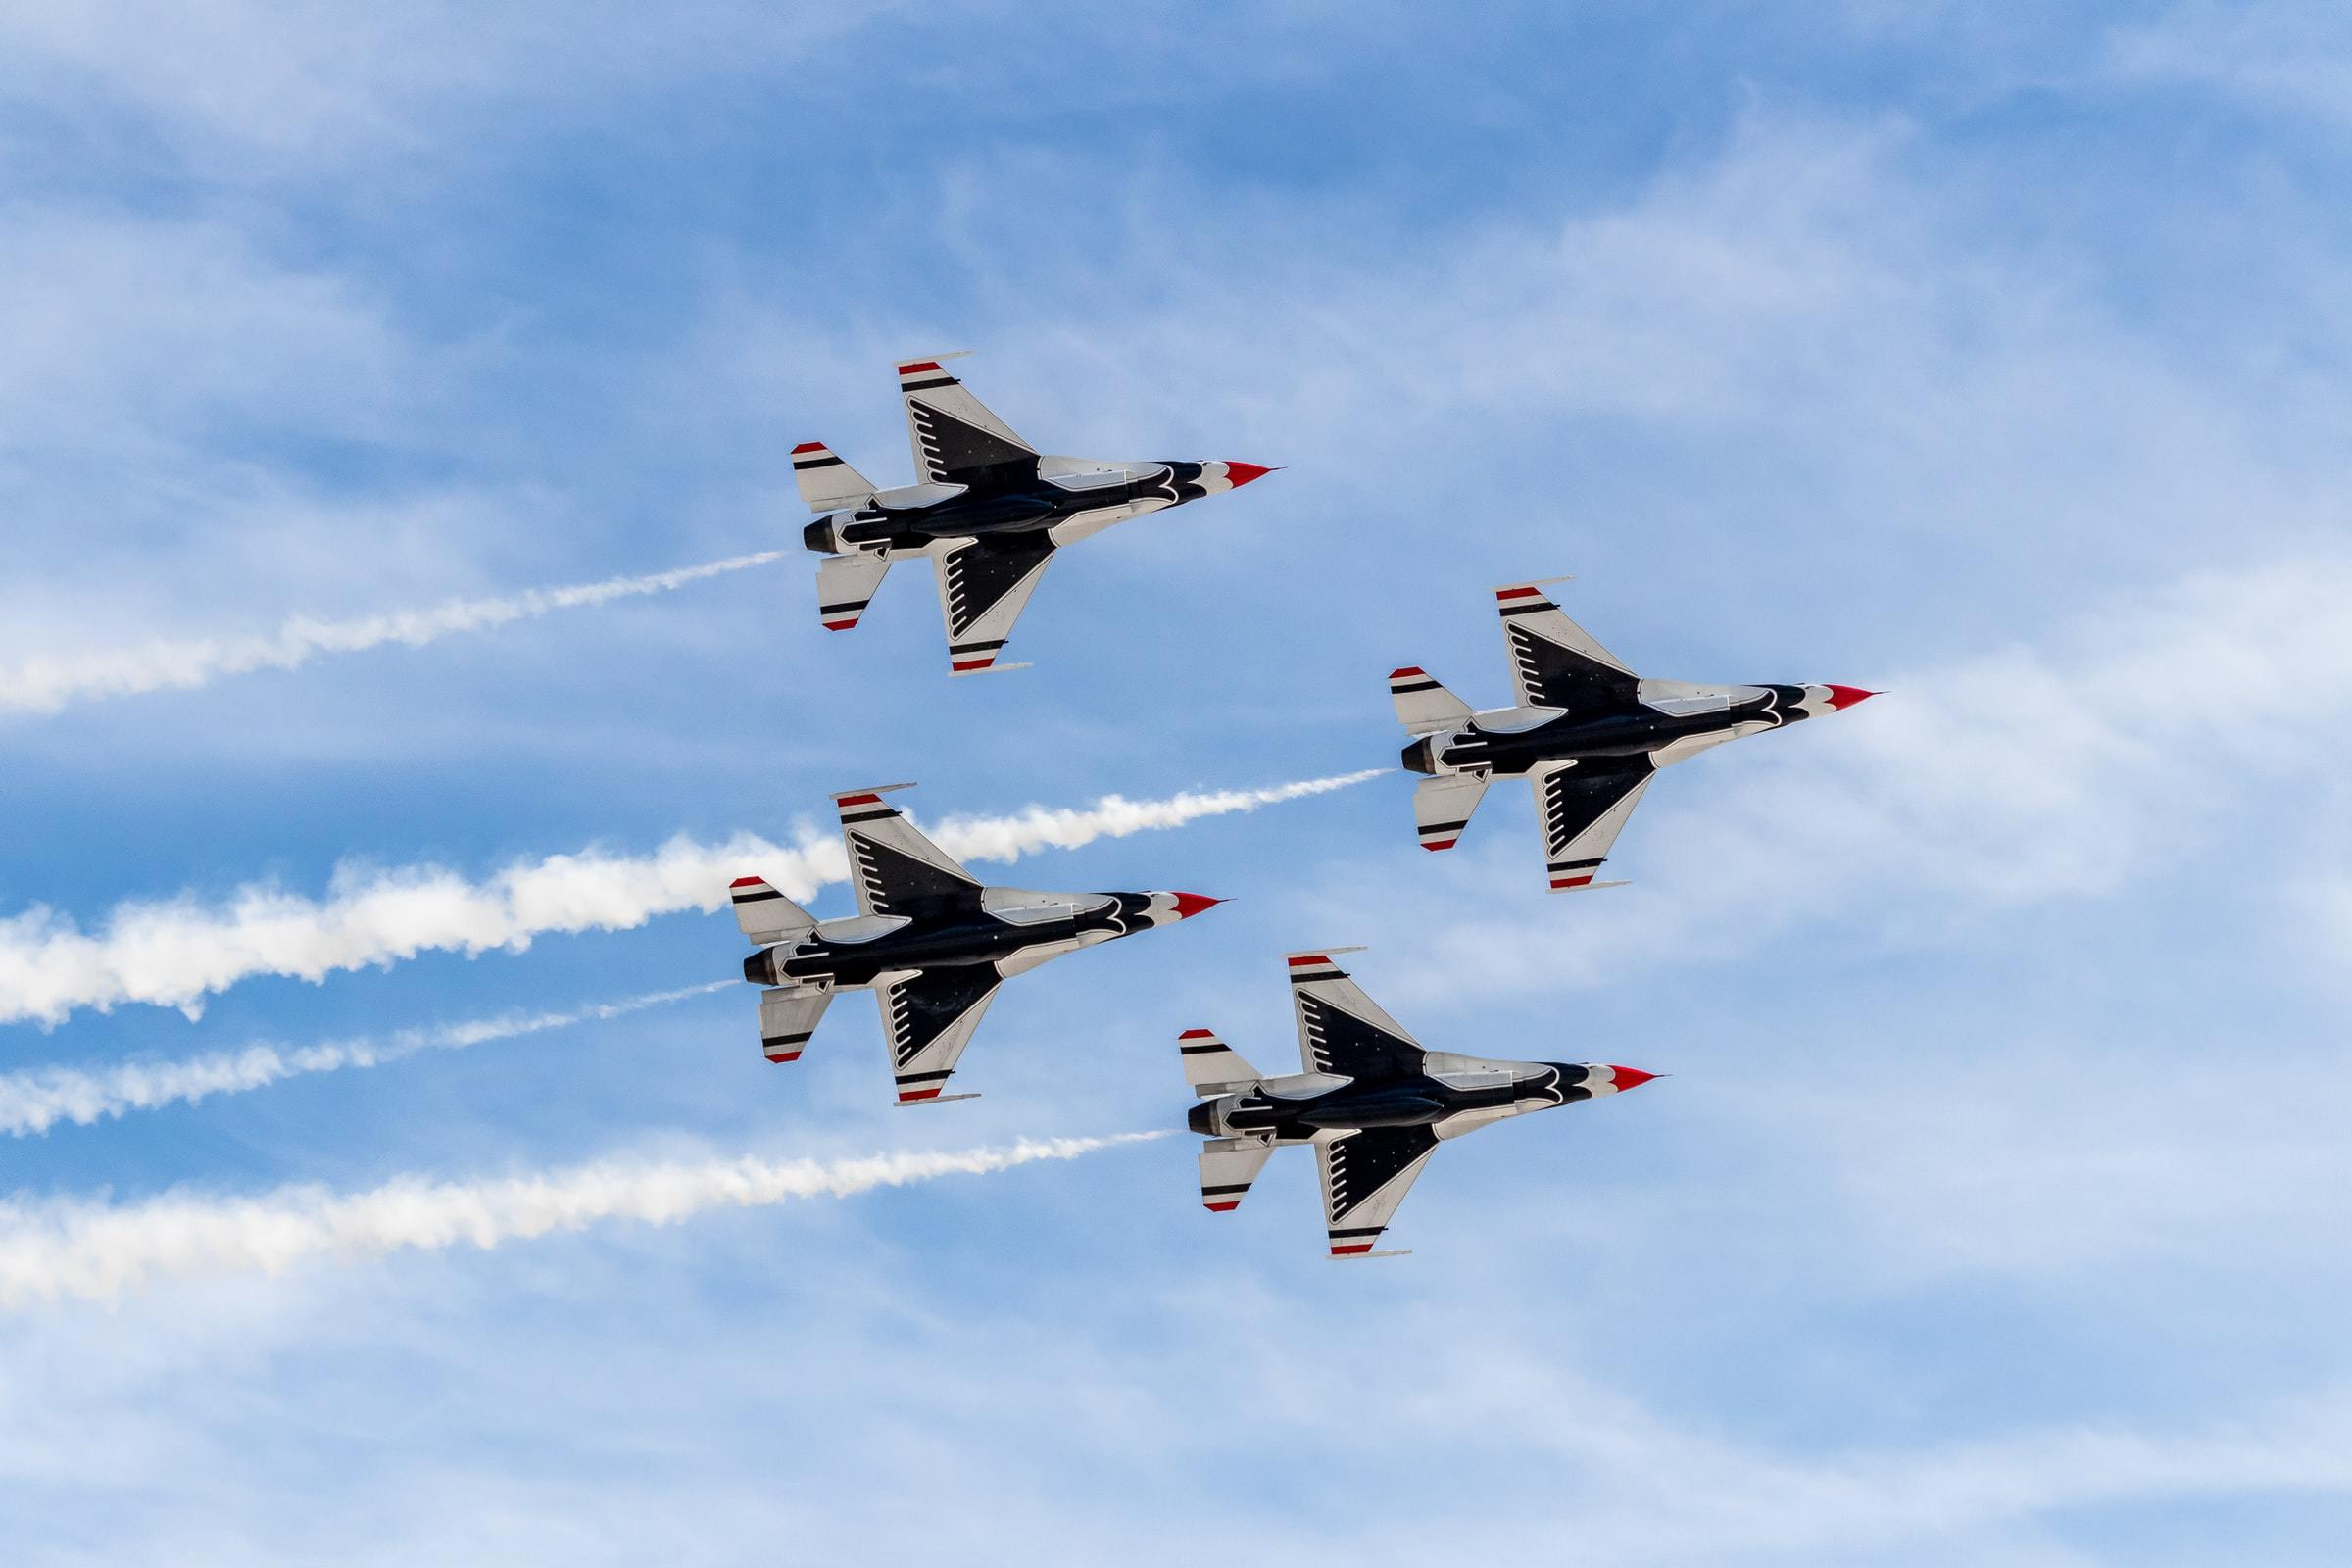 The Thunderbirds will fly over L.A. on Friday. Here's where and when you can see them.